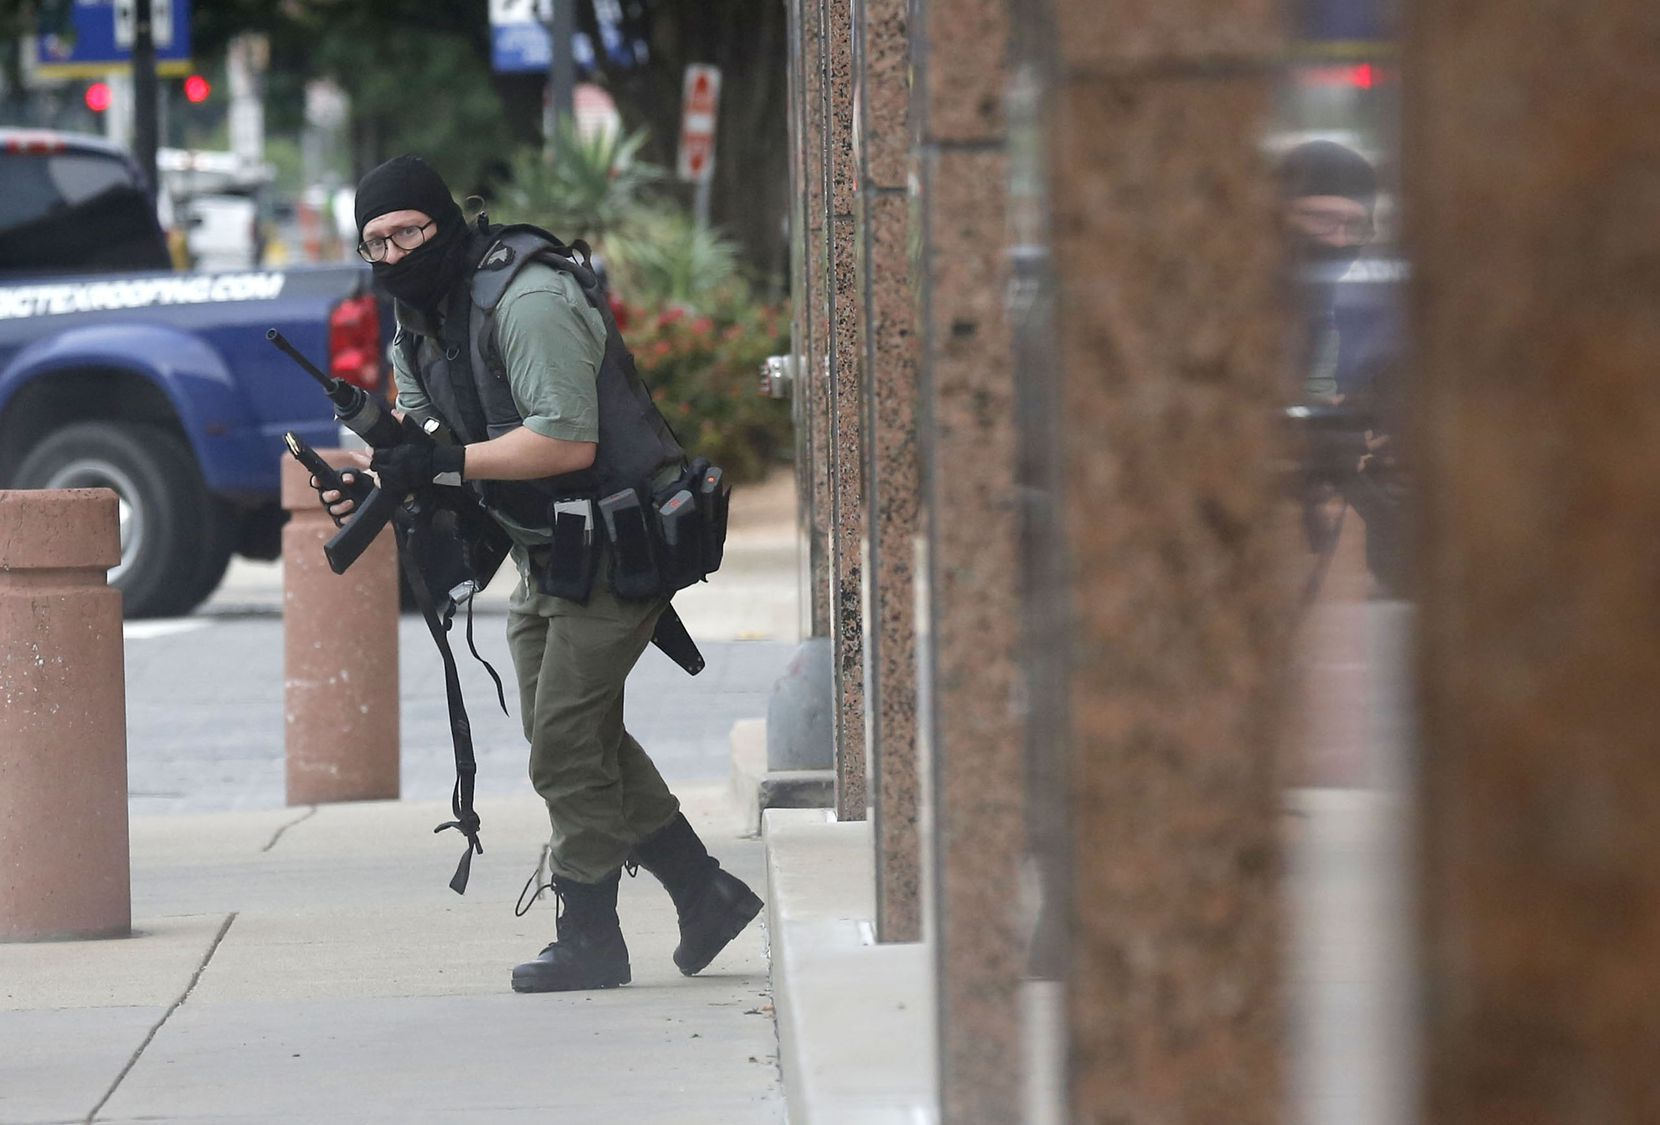 An armed shooter (shown) attacks at the Earle Cabell federal courthouse Monday morning in downtown Dallas. Law enforcement returned fire and the shooter was hit by gunfire. No officers or citizens were injured. FBI Special Agent in Charge Matthew DeSarno identified the shooter as Brian Isaack Clyde, 22